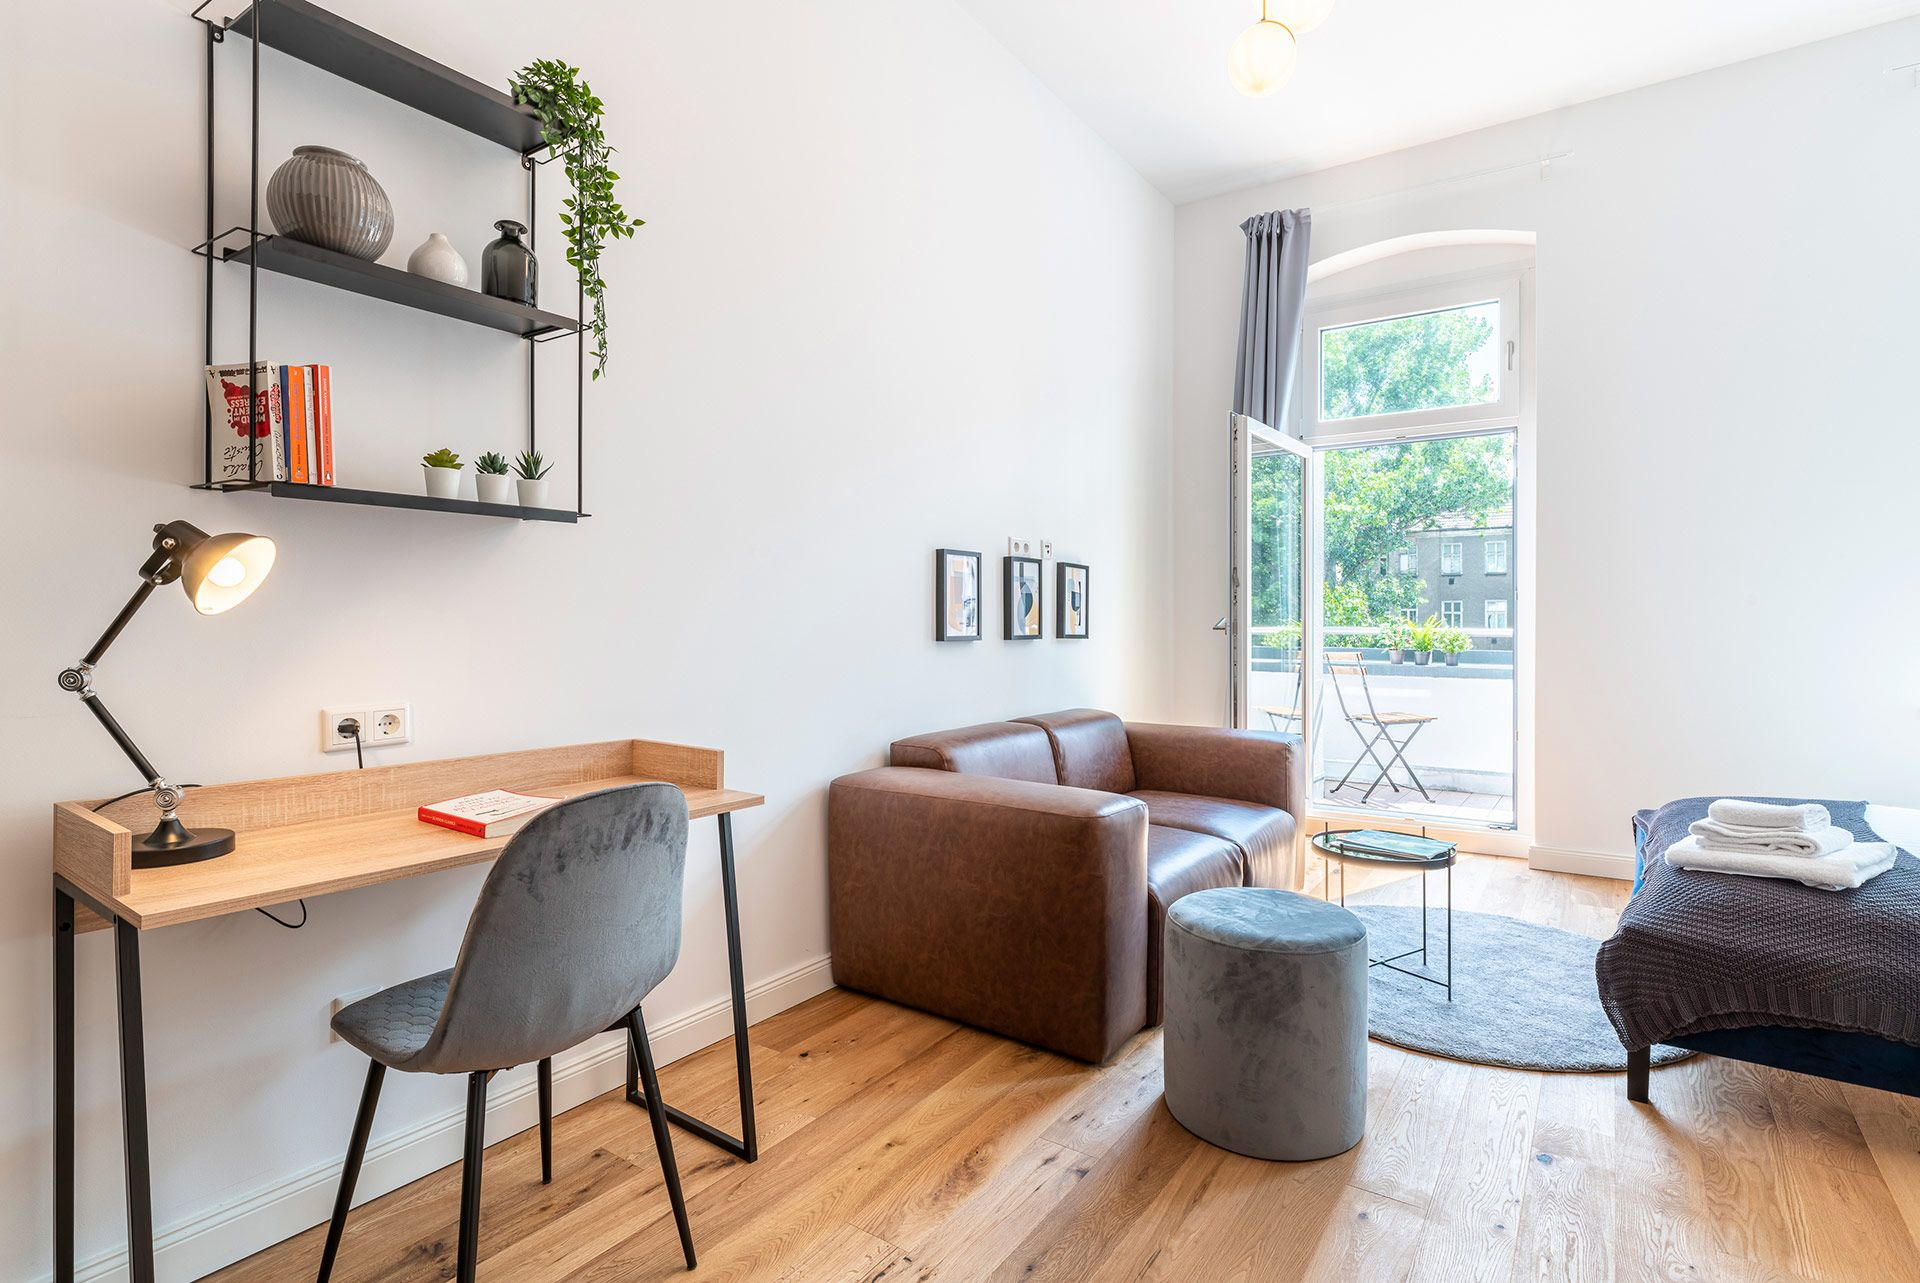 Private Room - Medium apartment to rent in Berlin STRA-MARK-1111-3